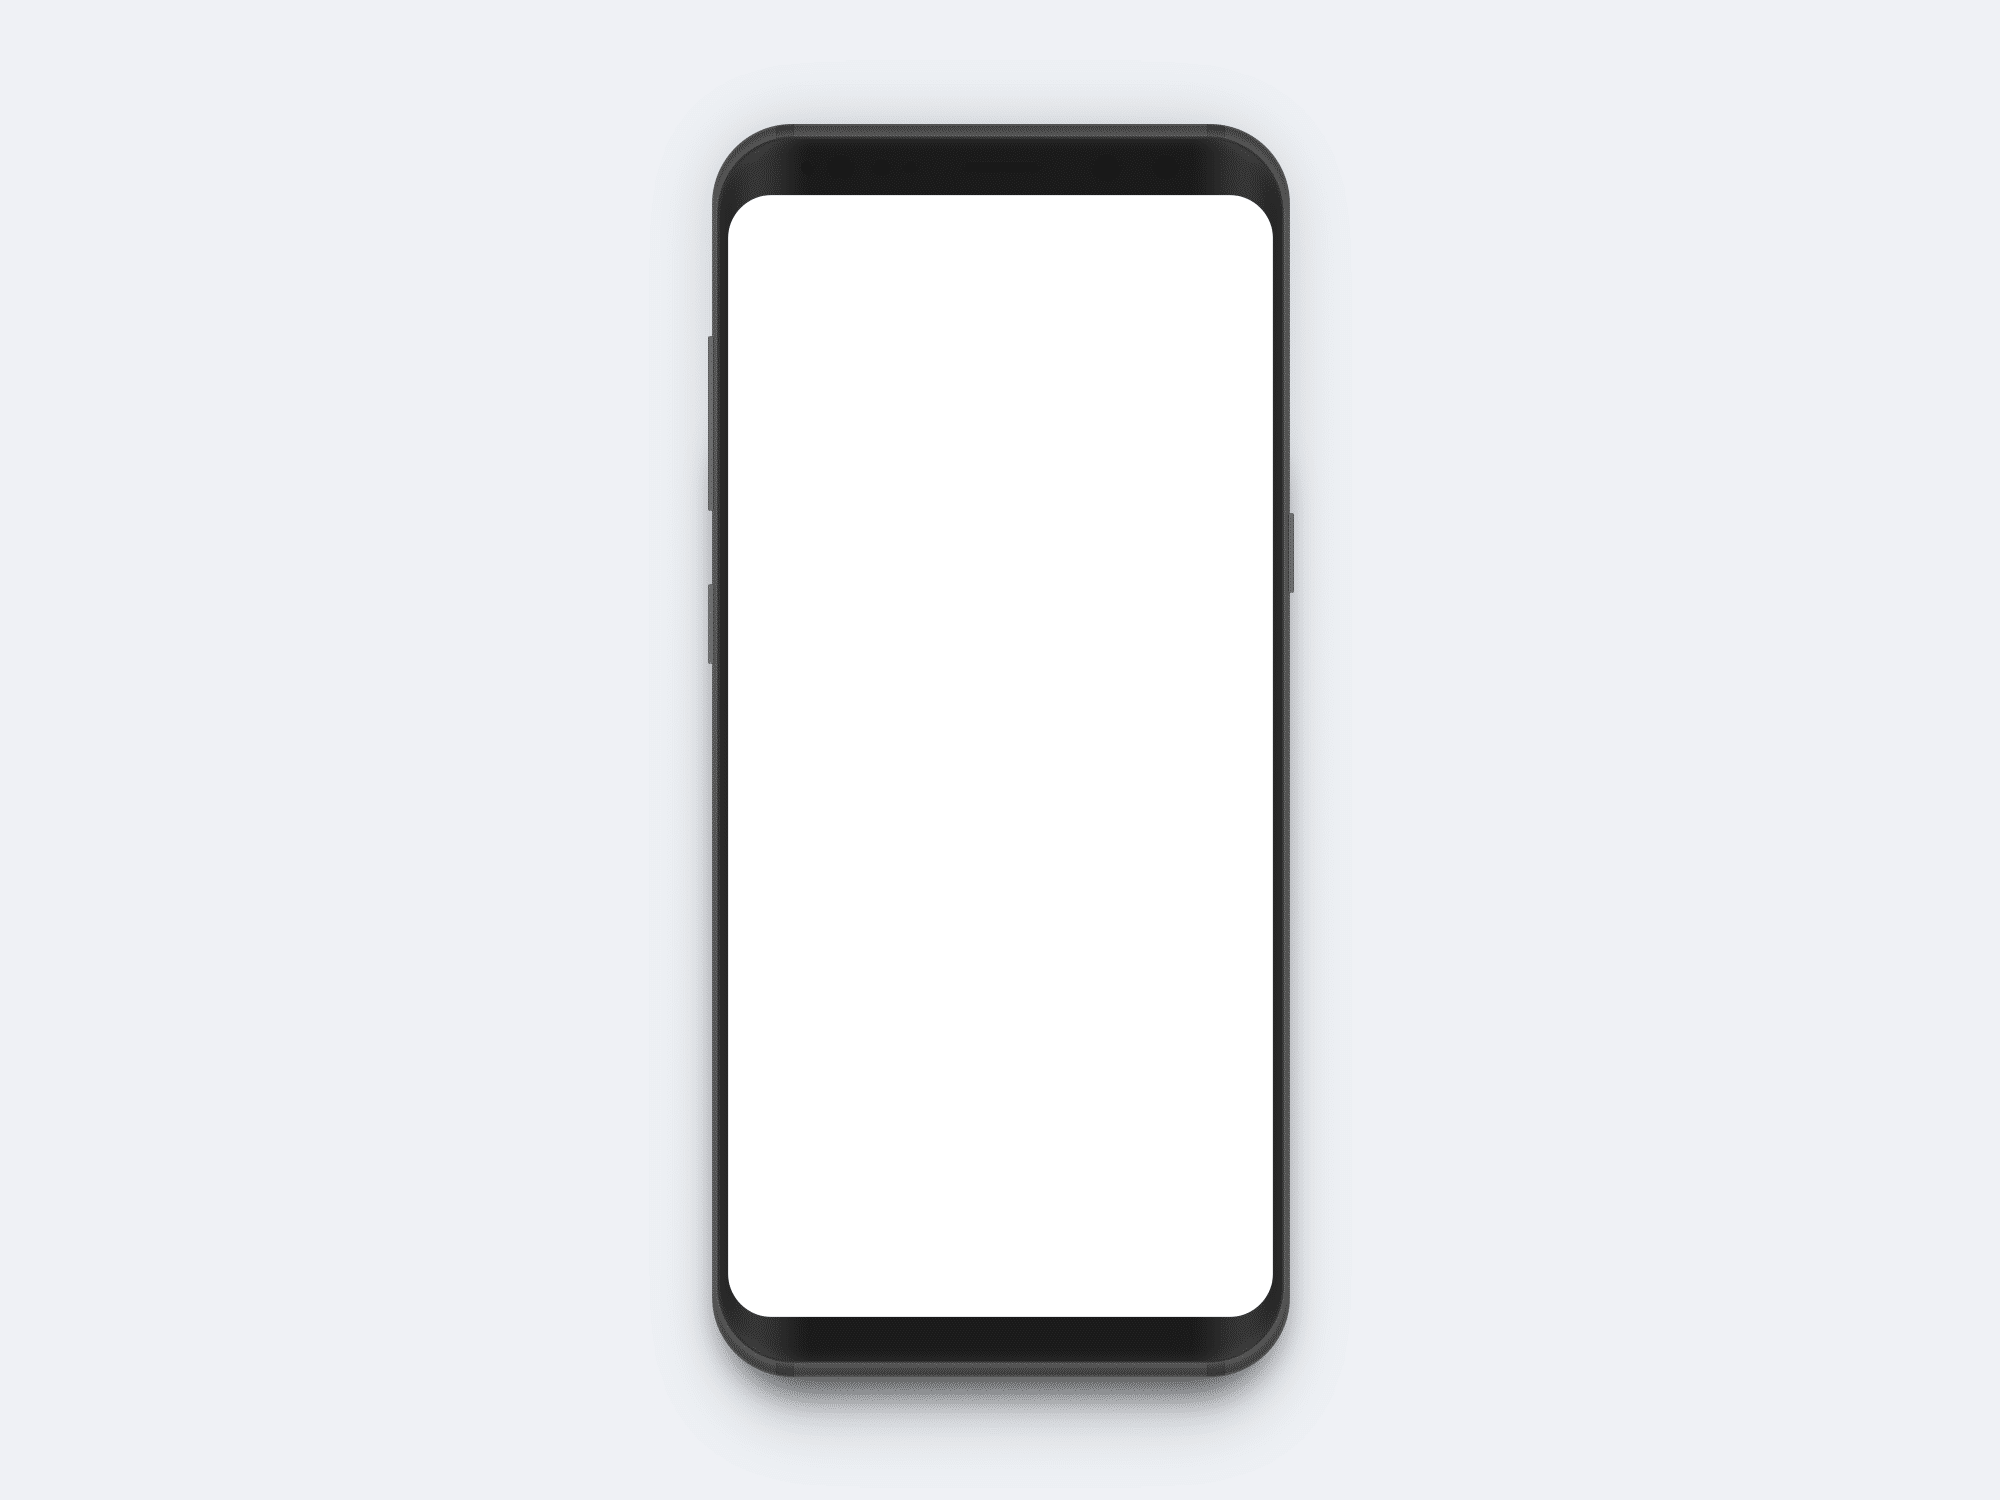 https://themockup.club/wp-content/uploads/2018/01/samsung_s8_mockup.png